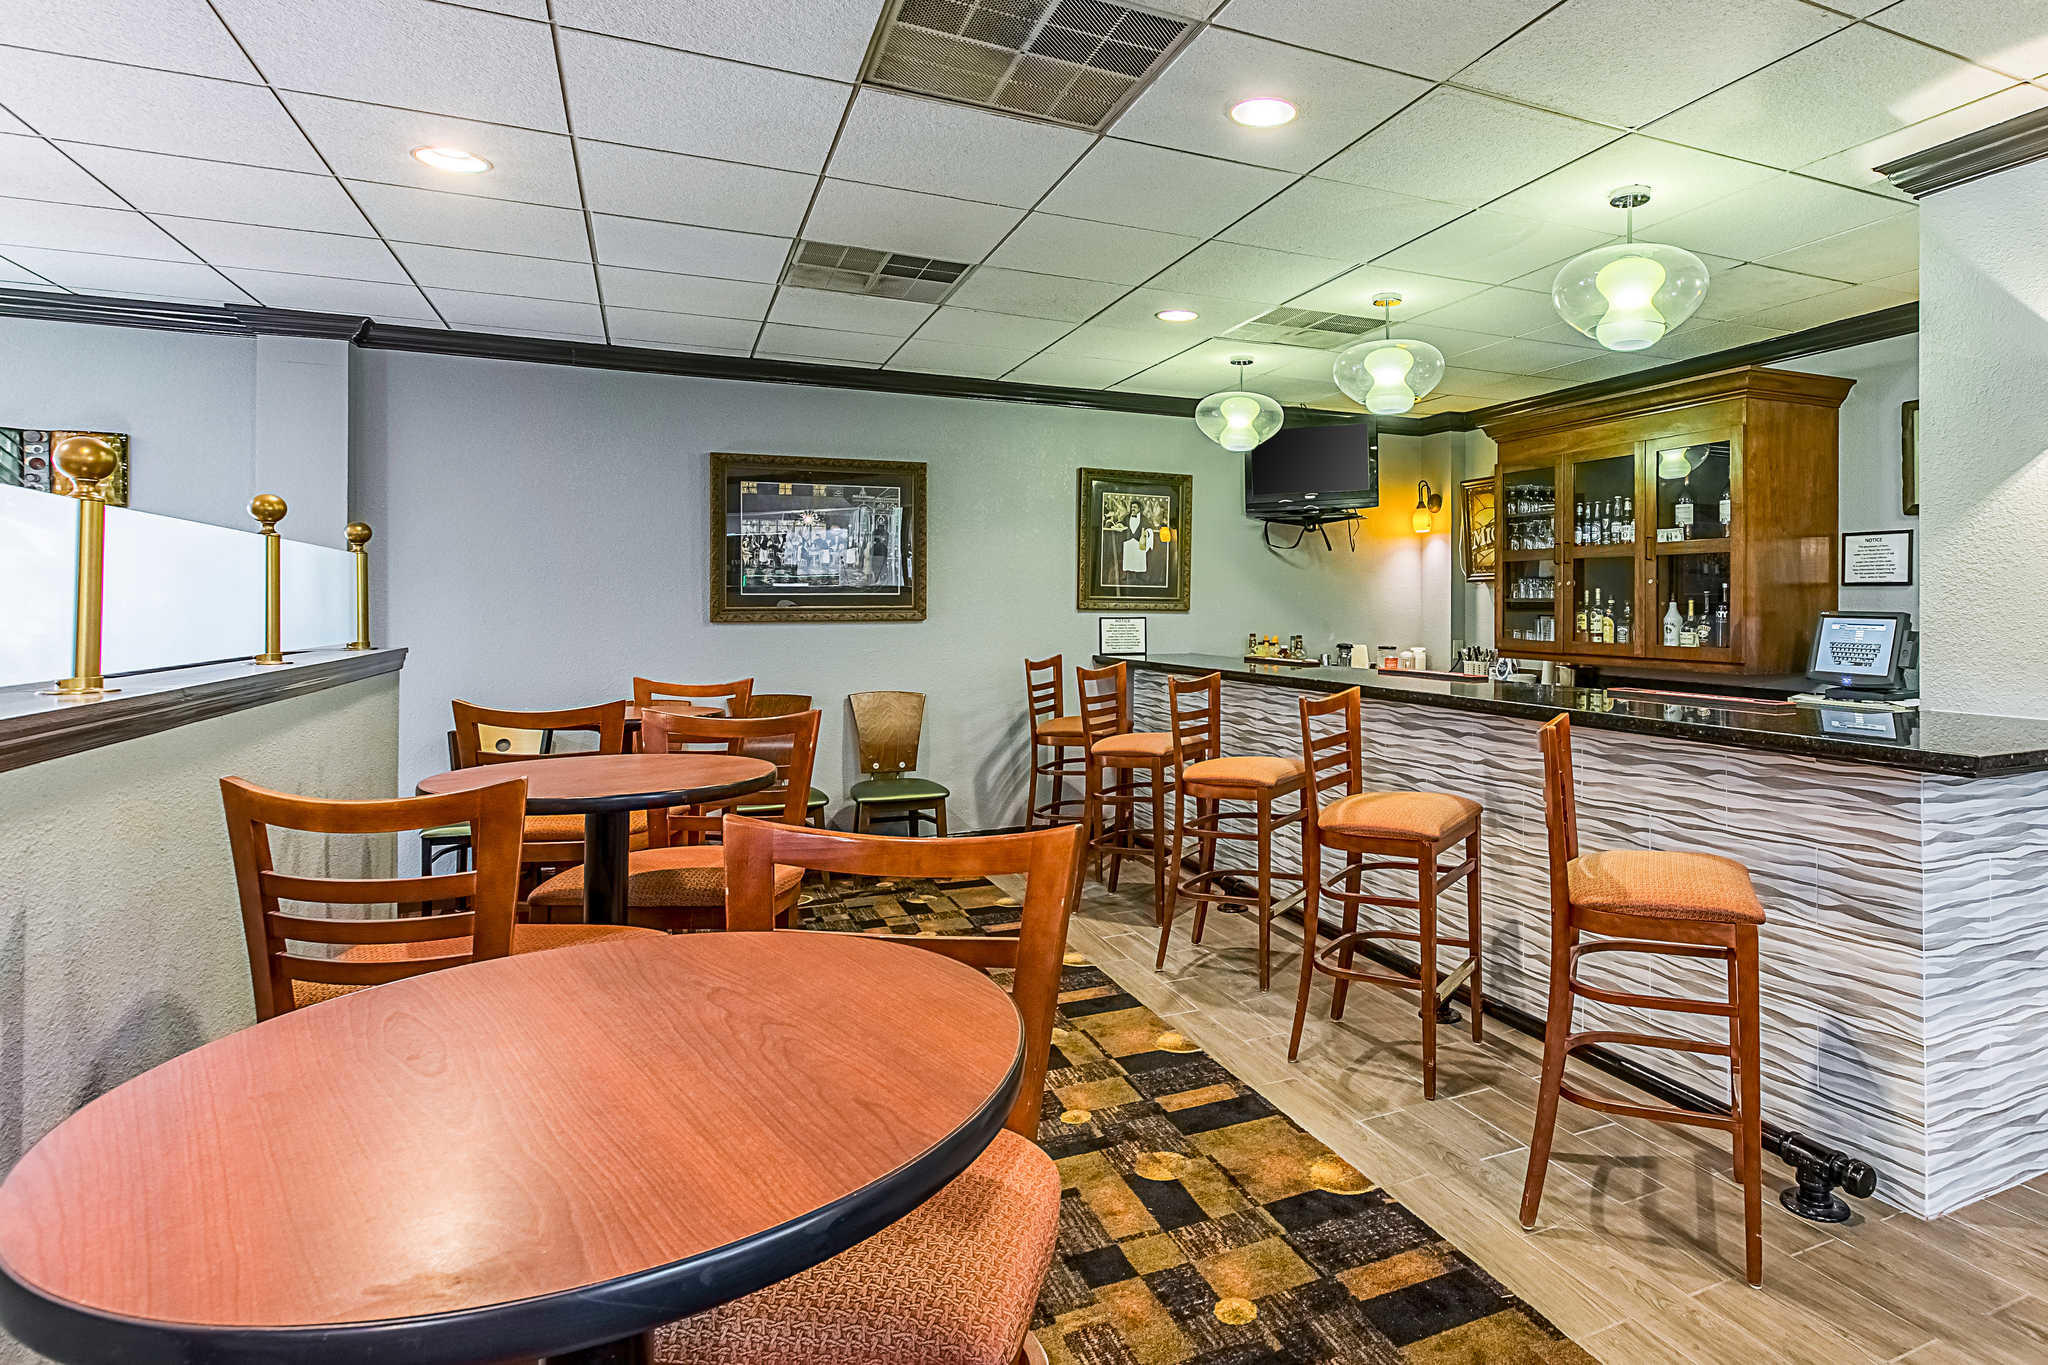 Clarion Inn Airport image 44